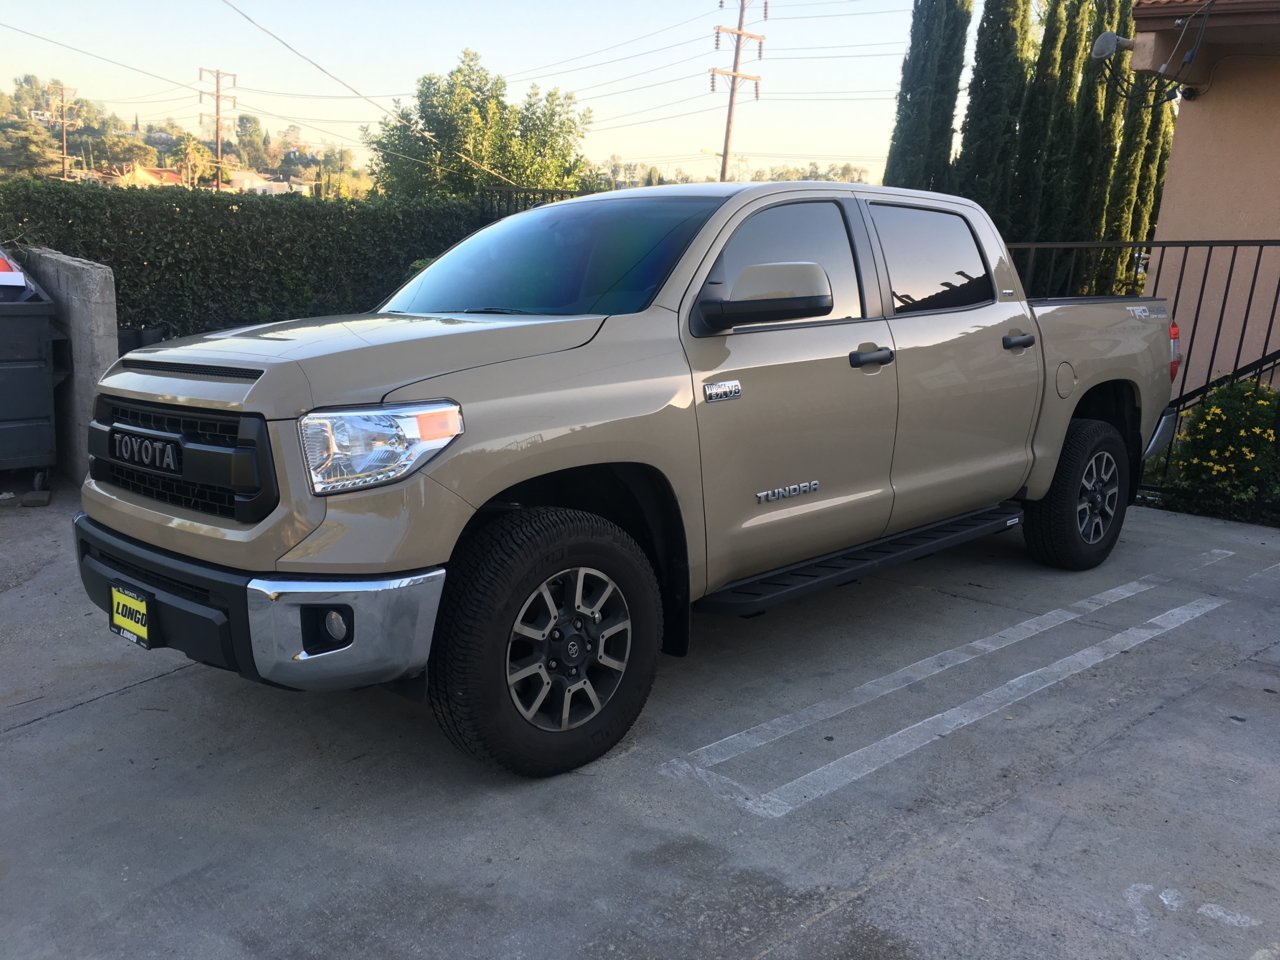 2017 Go Rhino Rb10 or RB20 on 2018 Crewmax | Toyota Tundra ...